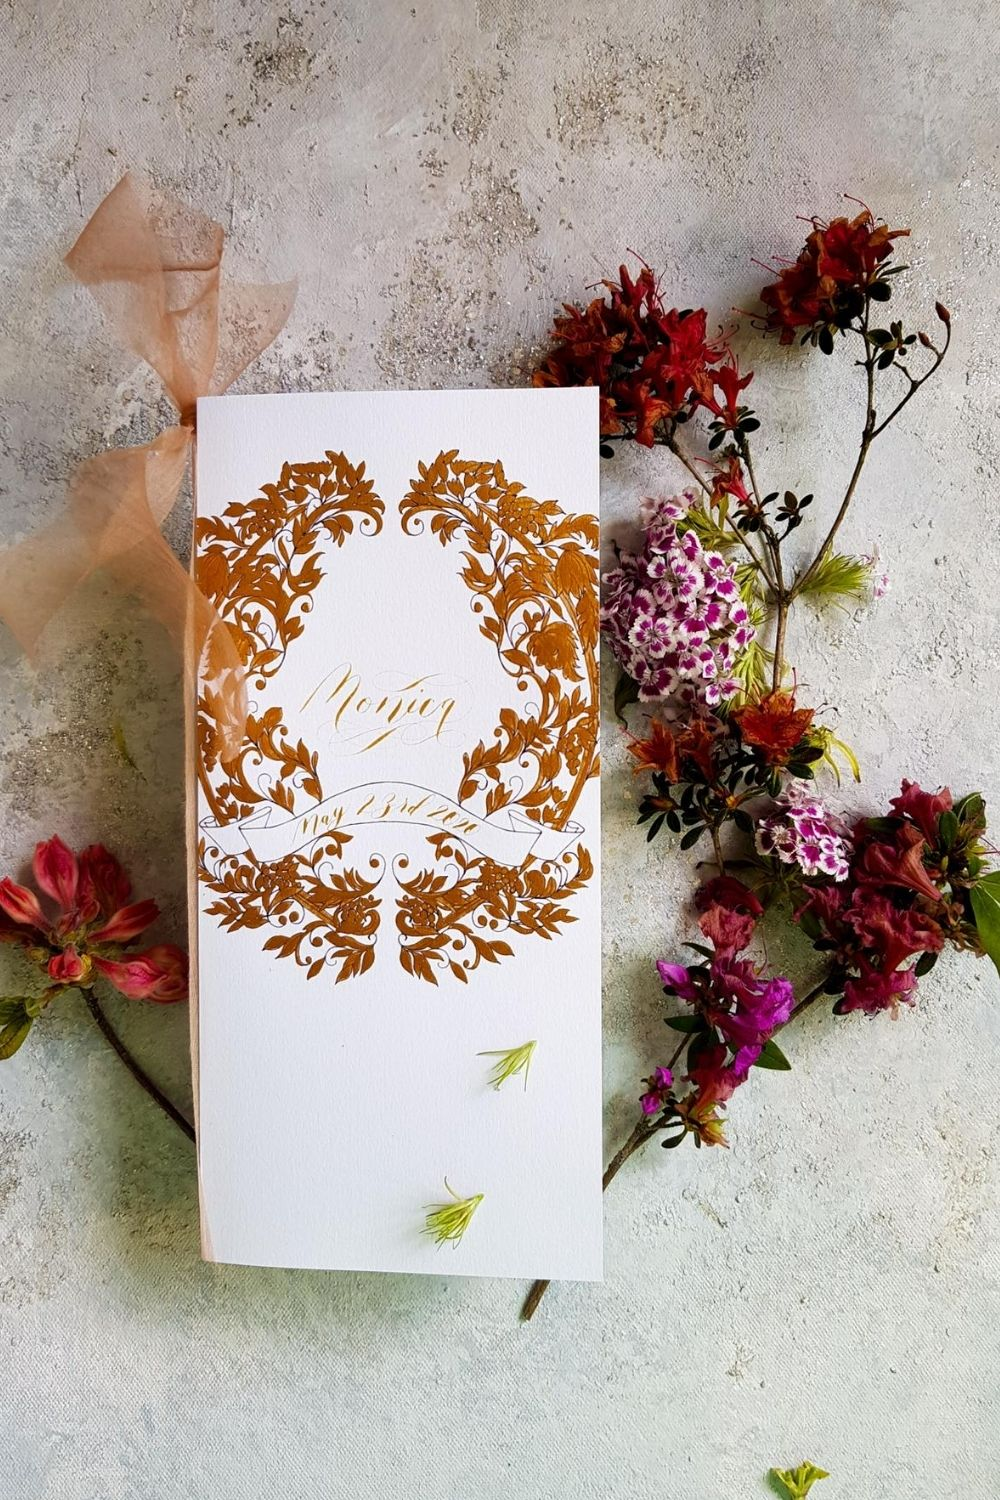 Deep rich coppery gold crest design for wedding menu design for an intimate wedding in Paris